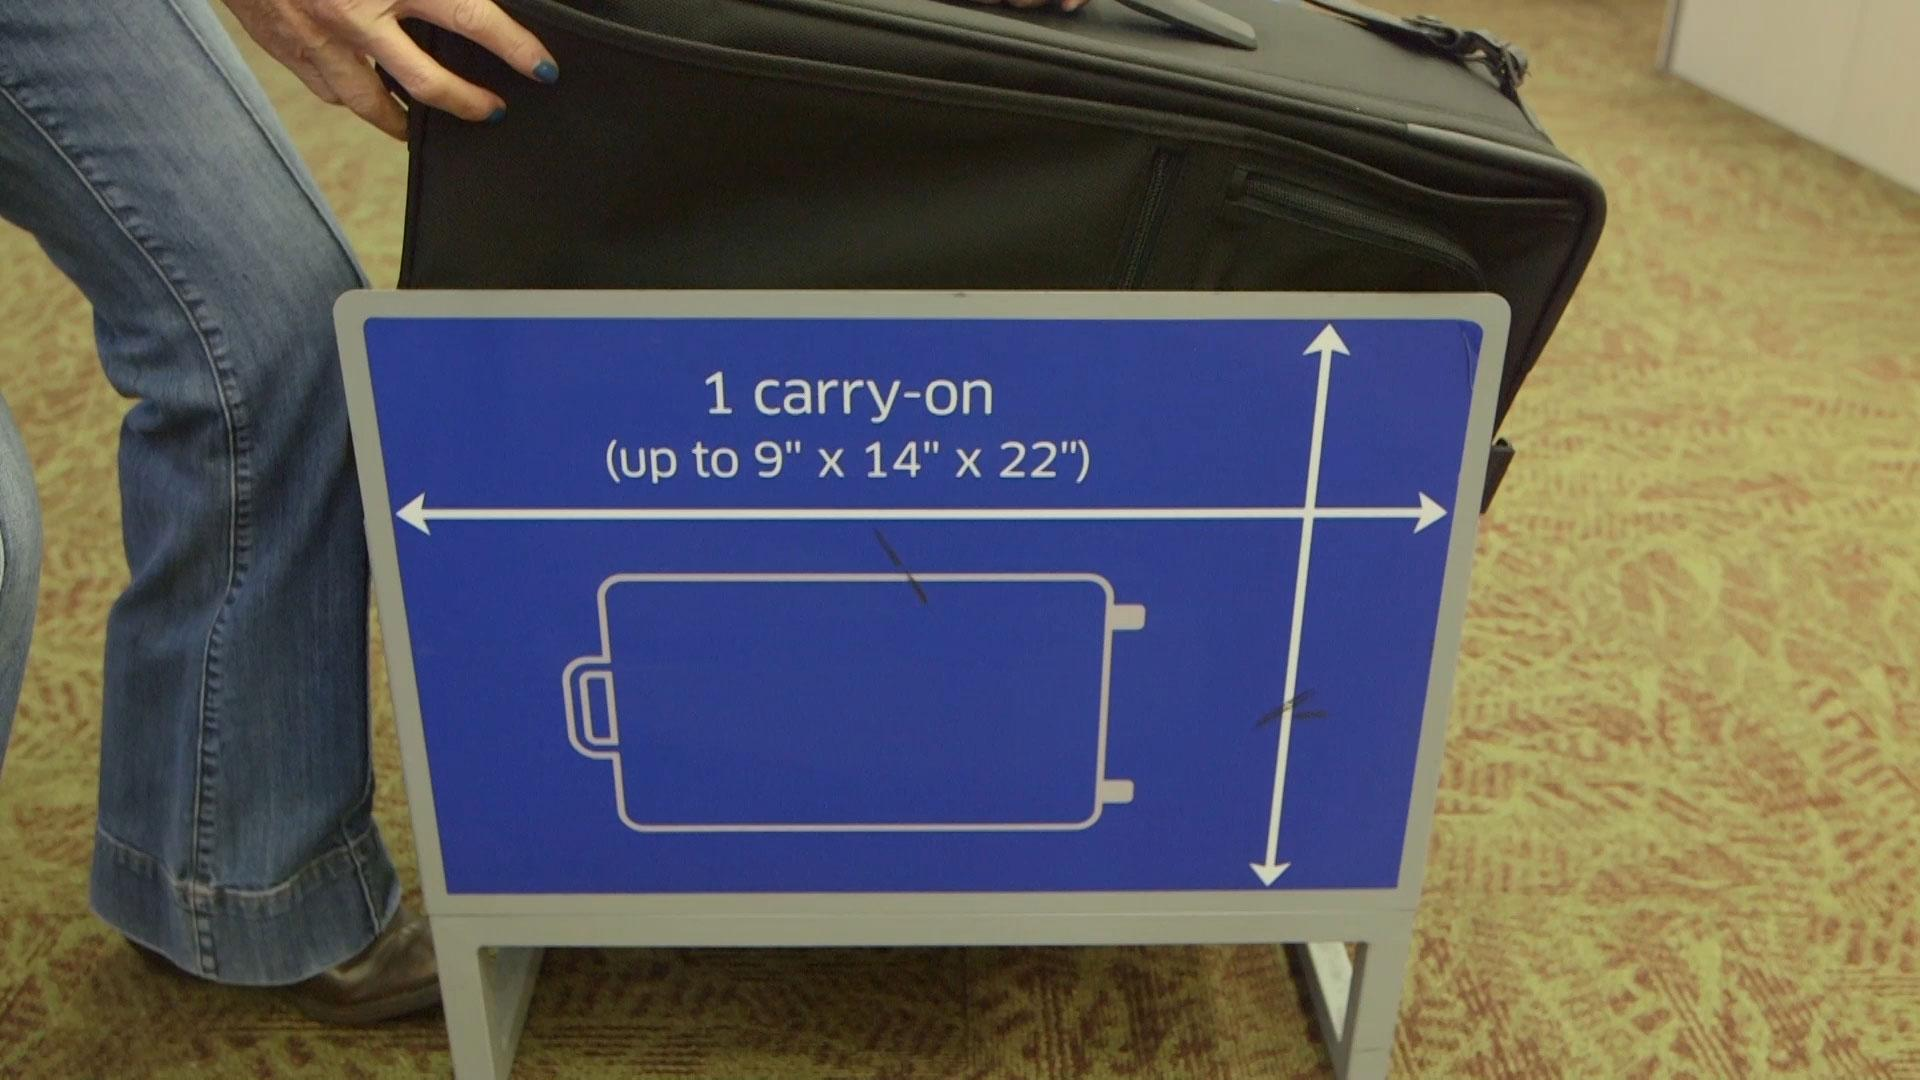 When Carry-On Luggage Isn't Carry-On Size - Consumer Reports